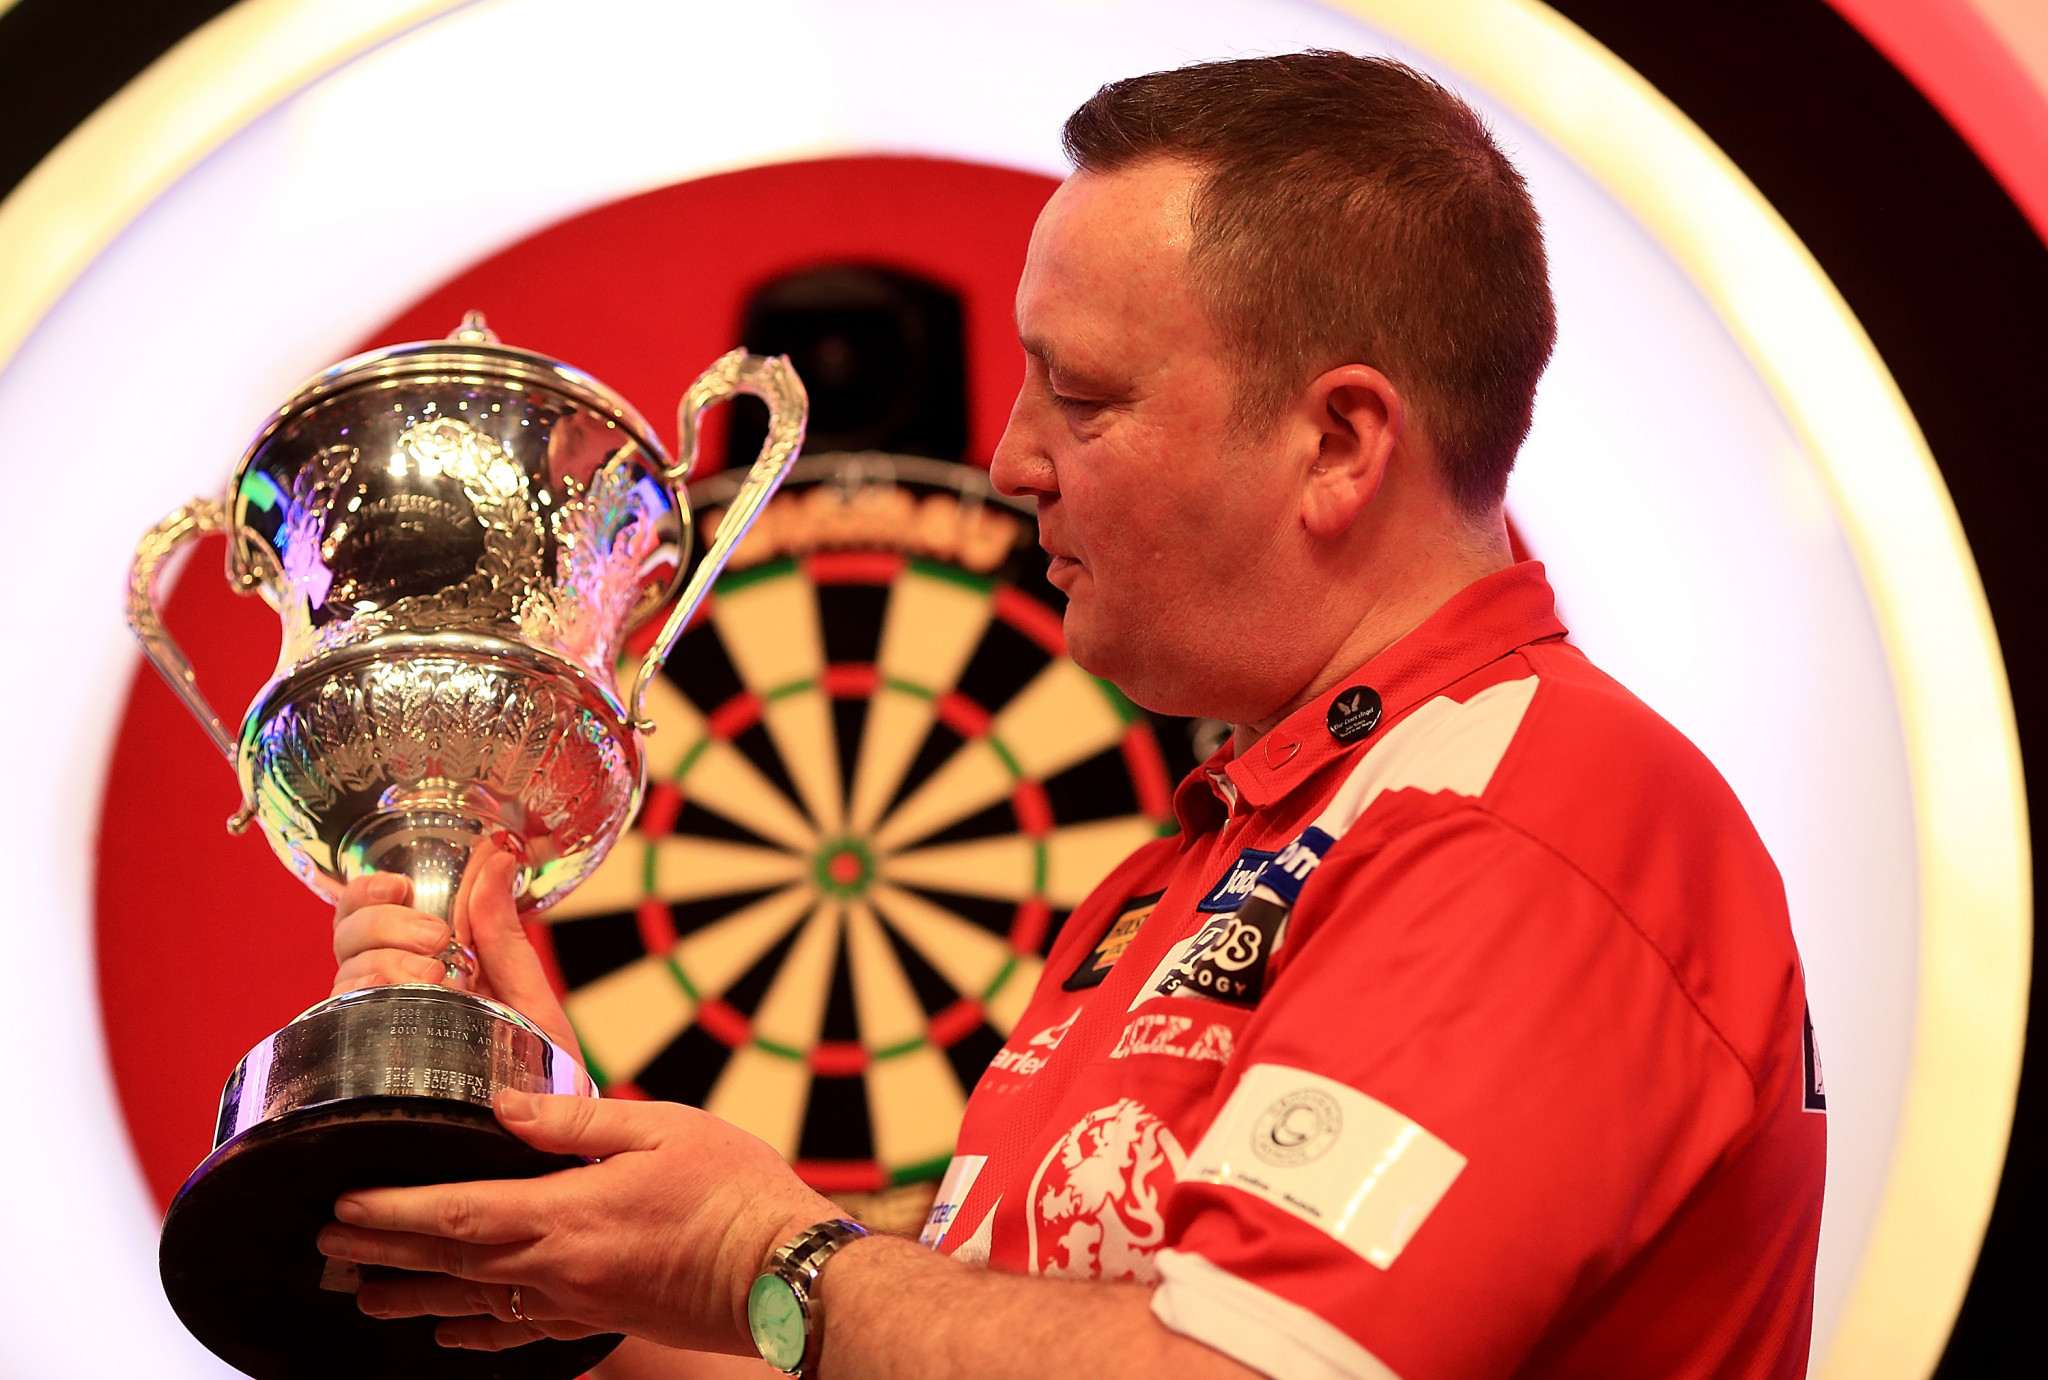 England's Glen Durrant will not have the chance to defend the team title won at the last WDF World Cup as plans to compete in Kobe have been cancelled ©Getty Images